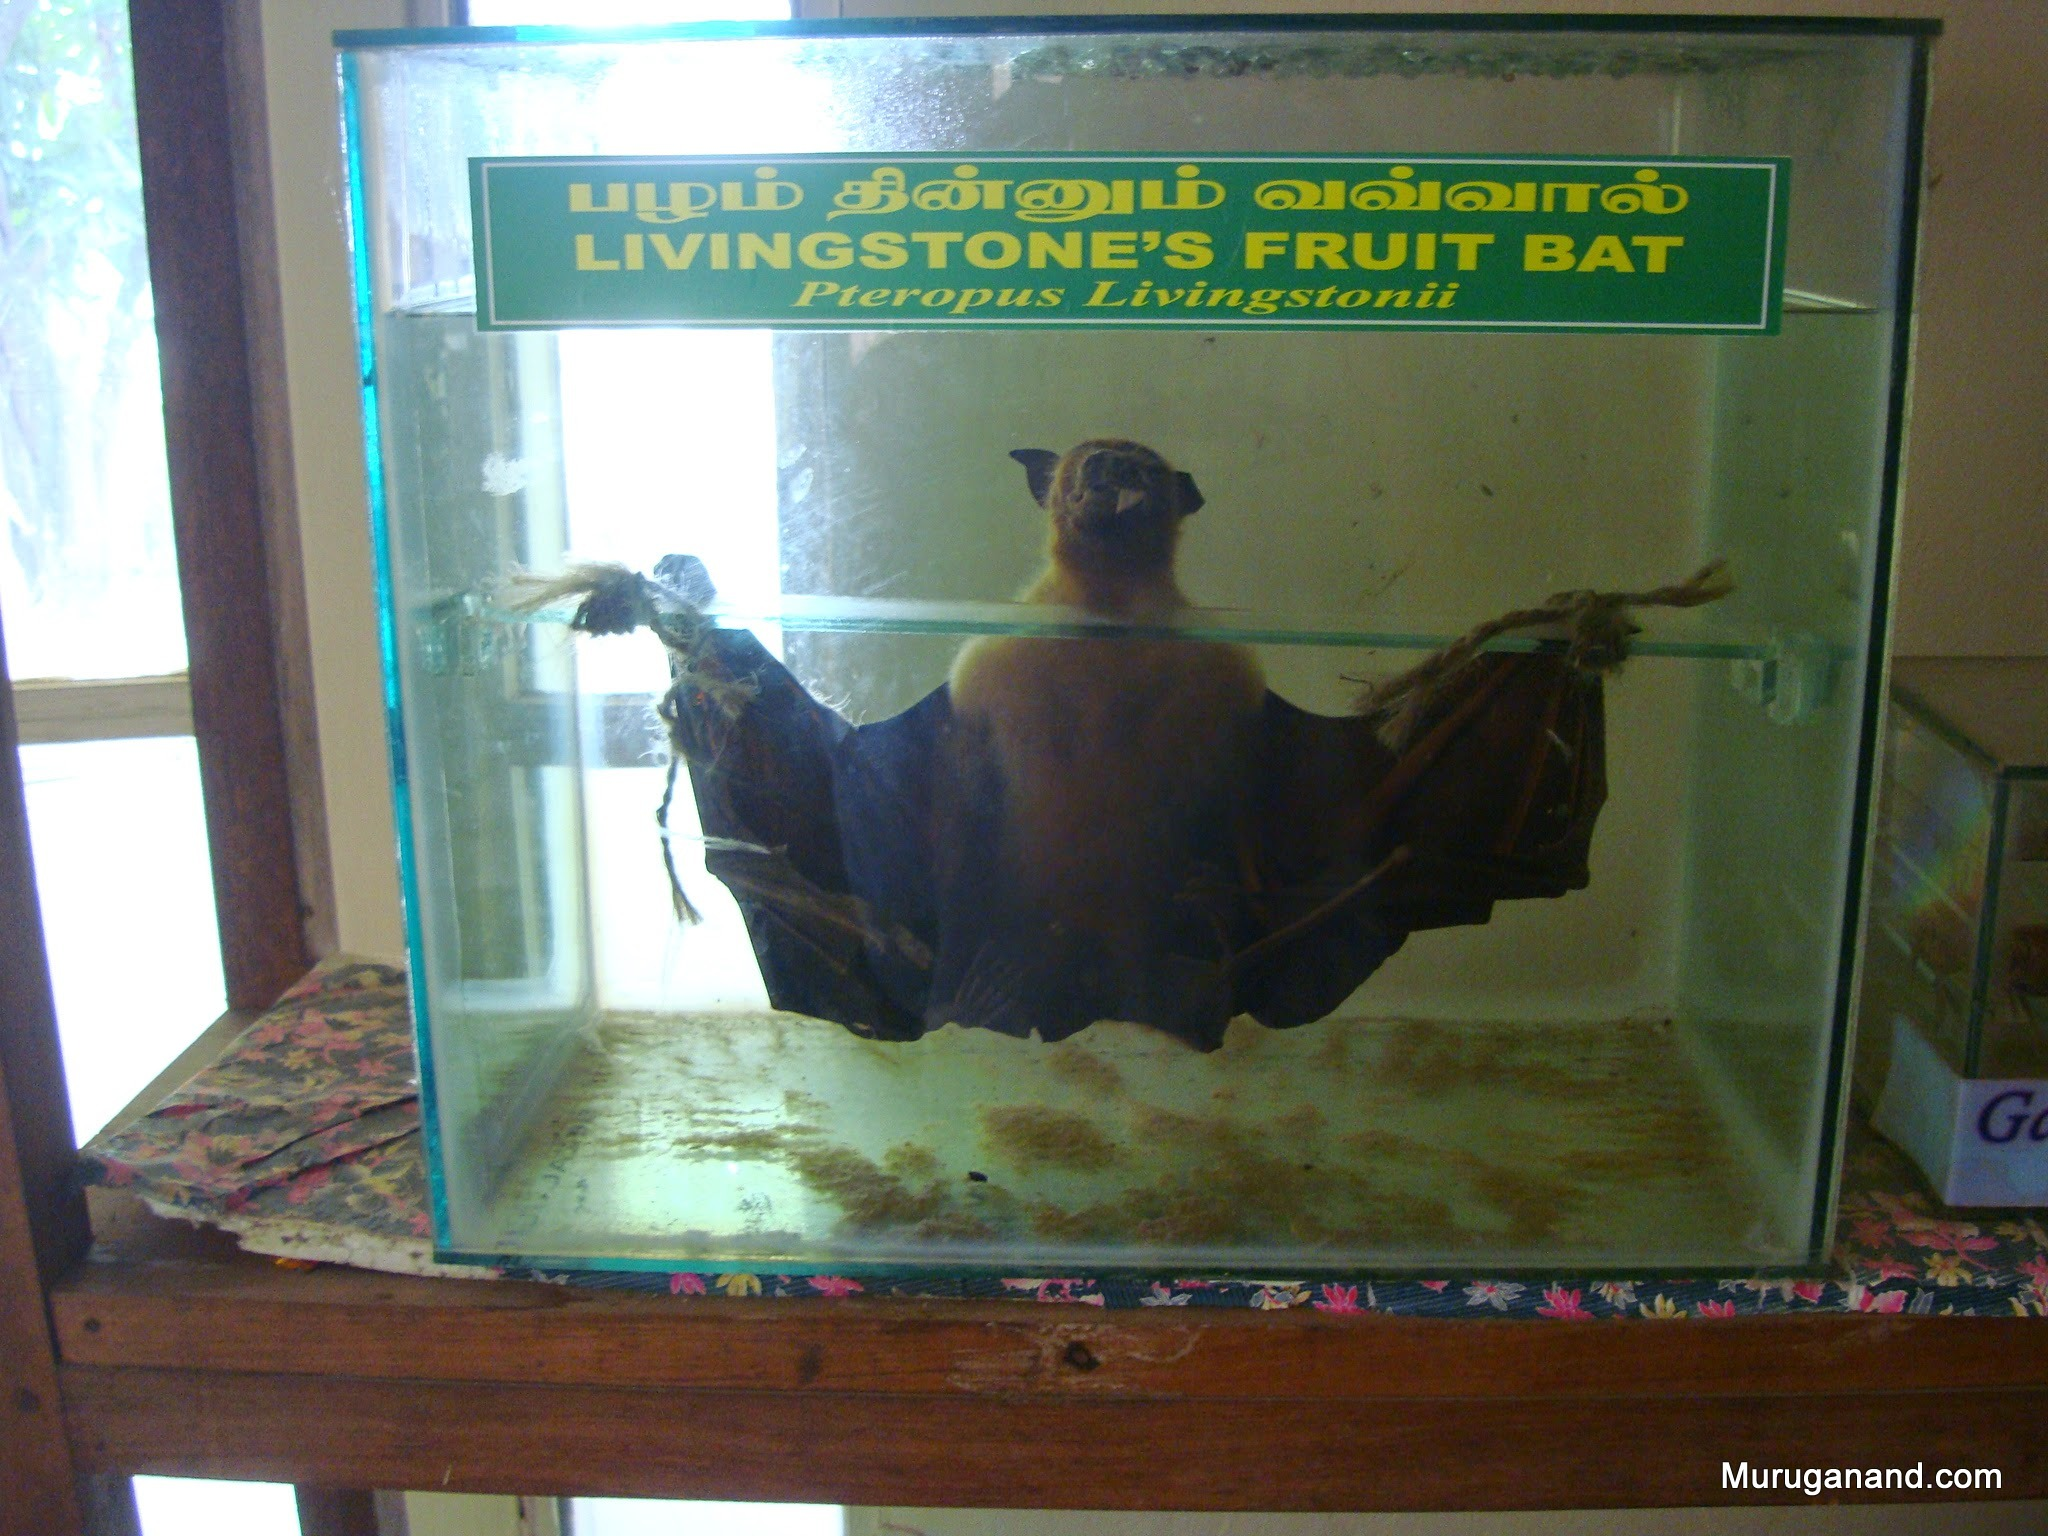 Mega bat that eats fruitsRare species found in Africa, Madagaskar and here